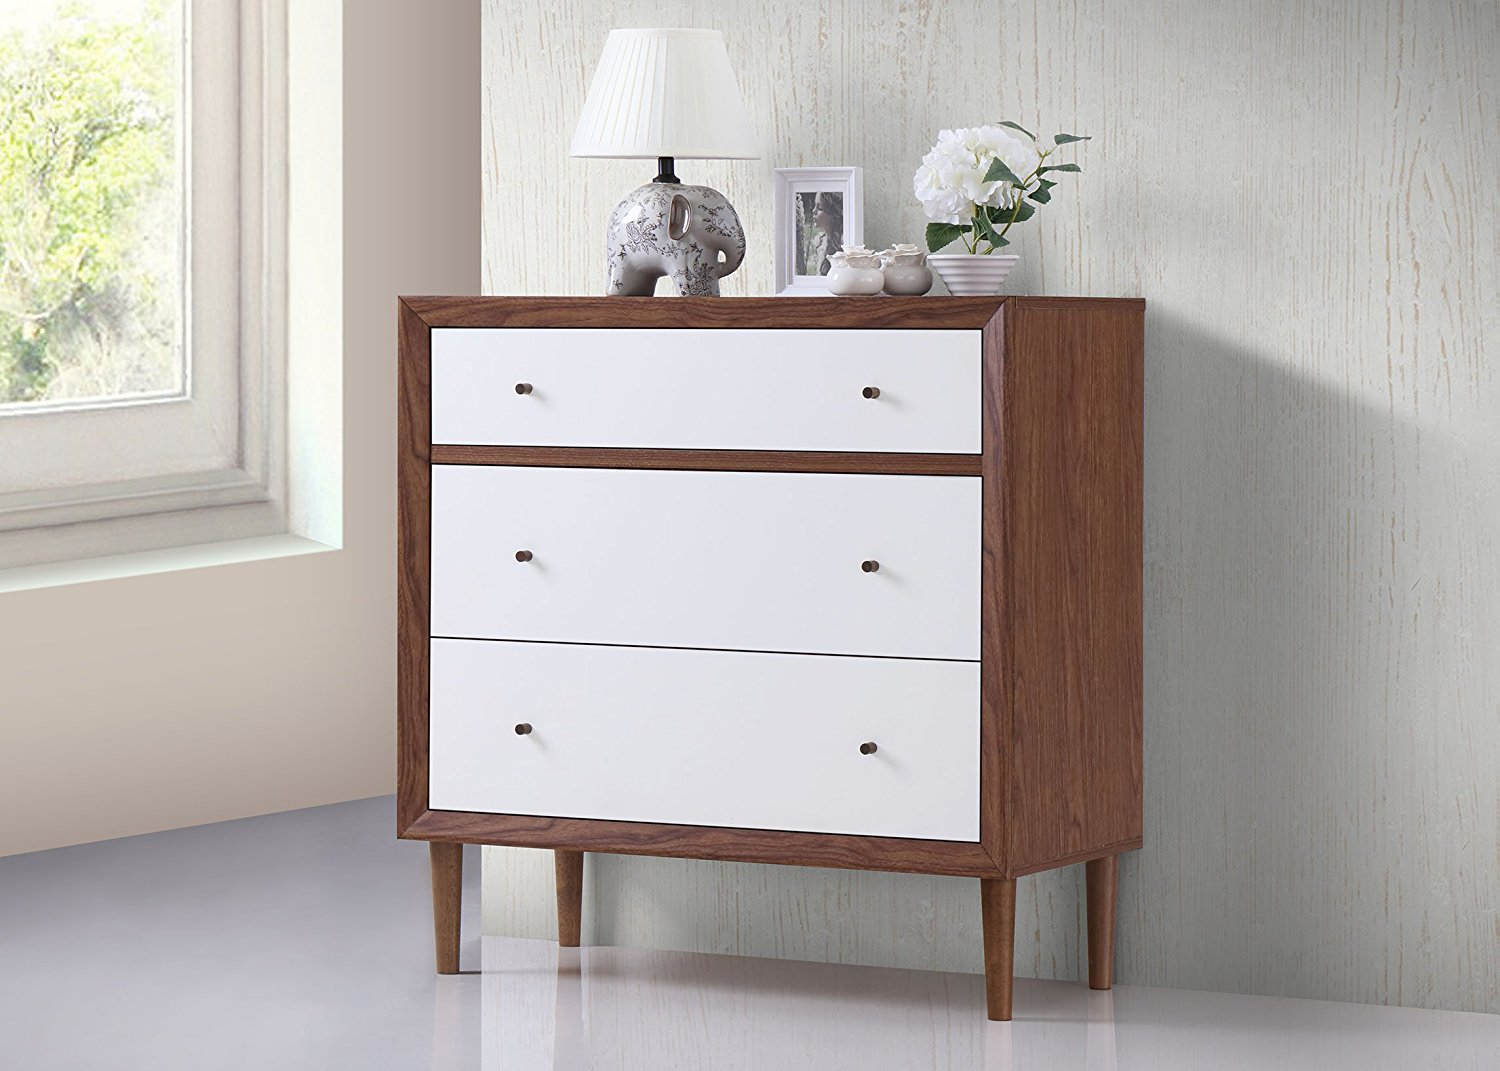 Picture of: Ikea Hemnes 3 Drawer Dresser Wood